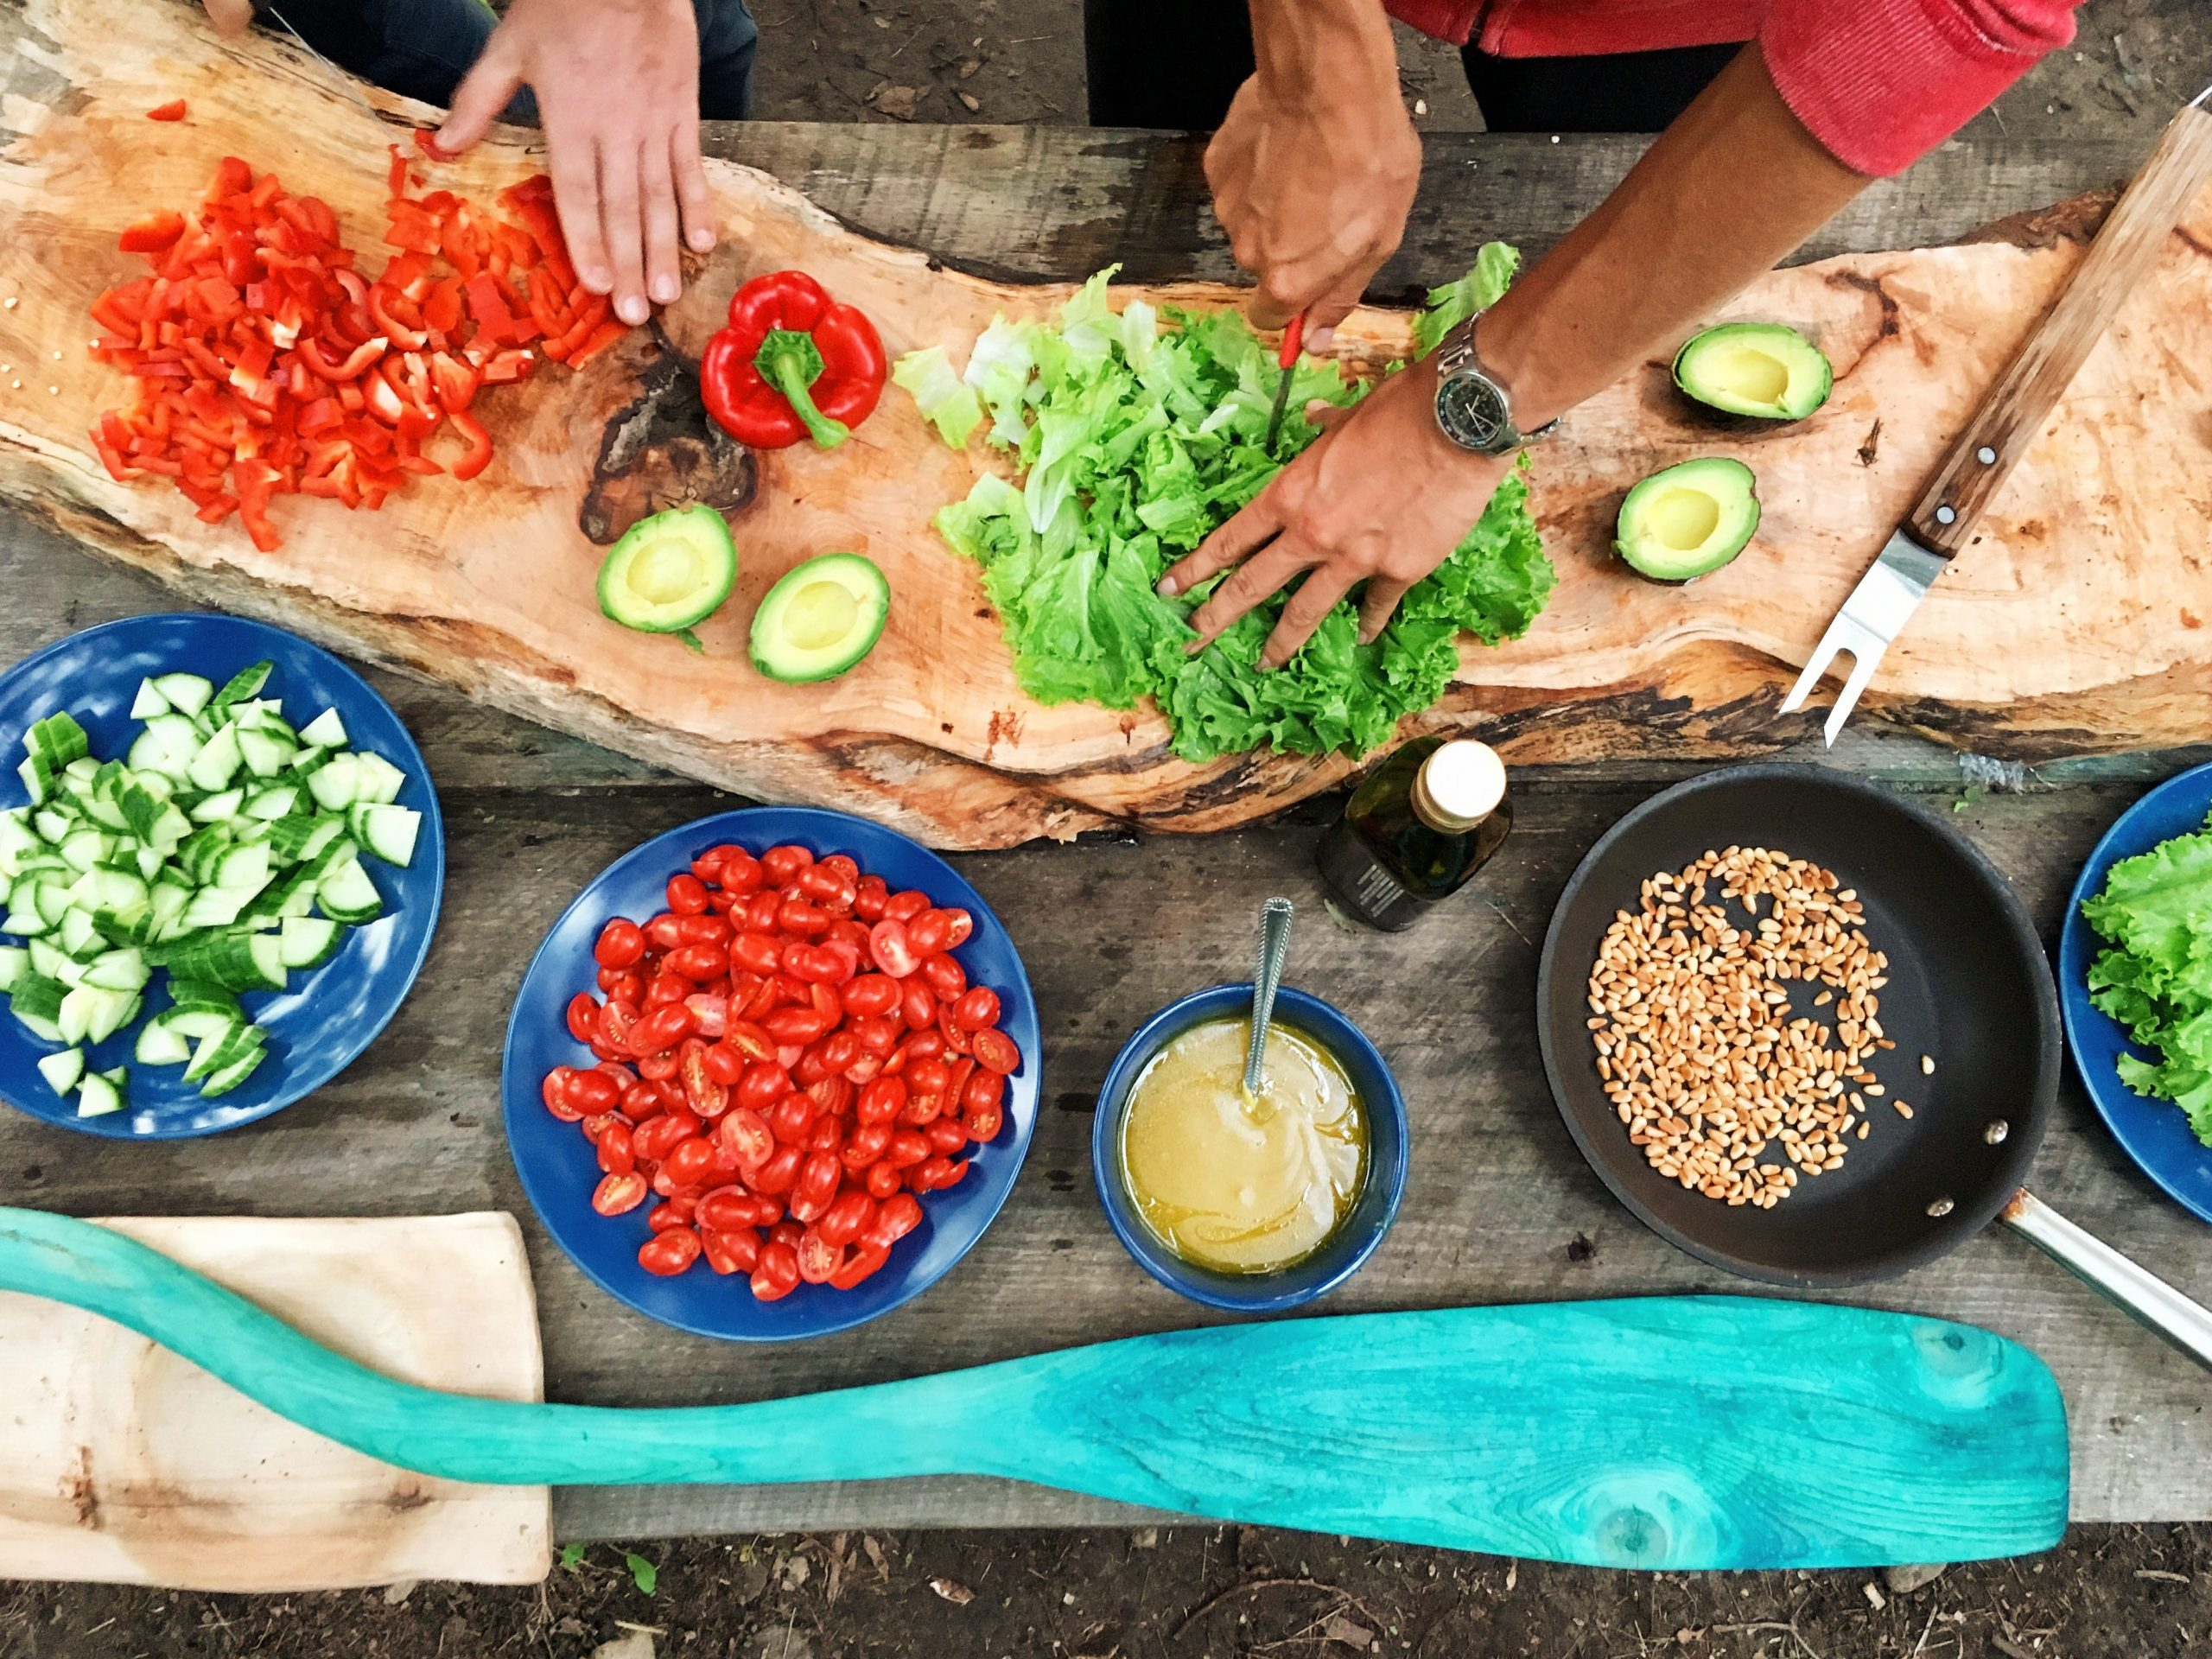 A variety of colorful fresh food being chopped and prepared for a salad (lettuce, tomatoes, red peppers).